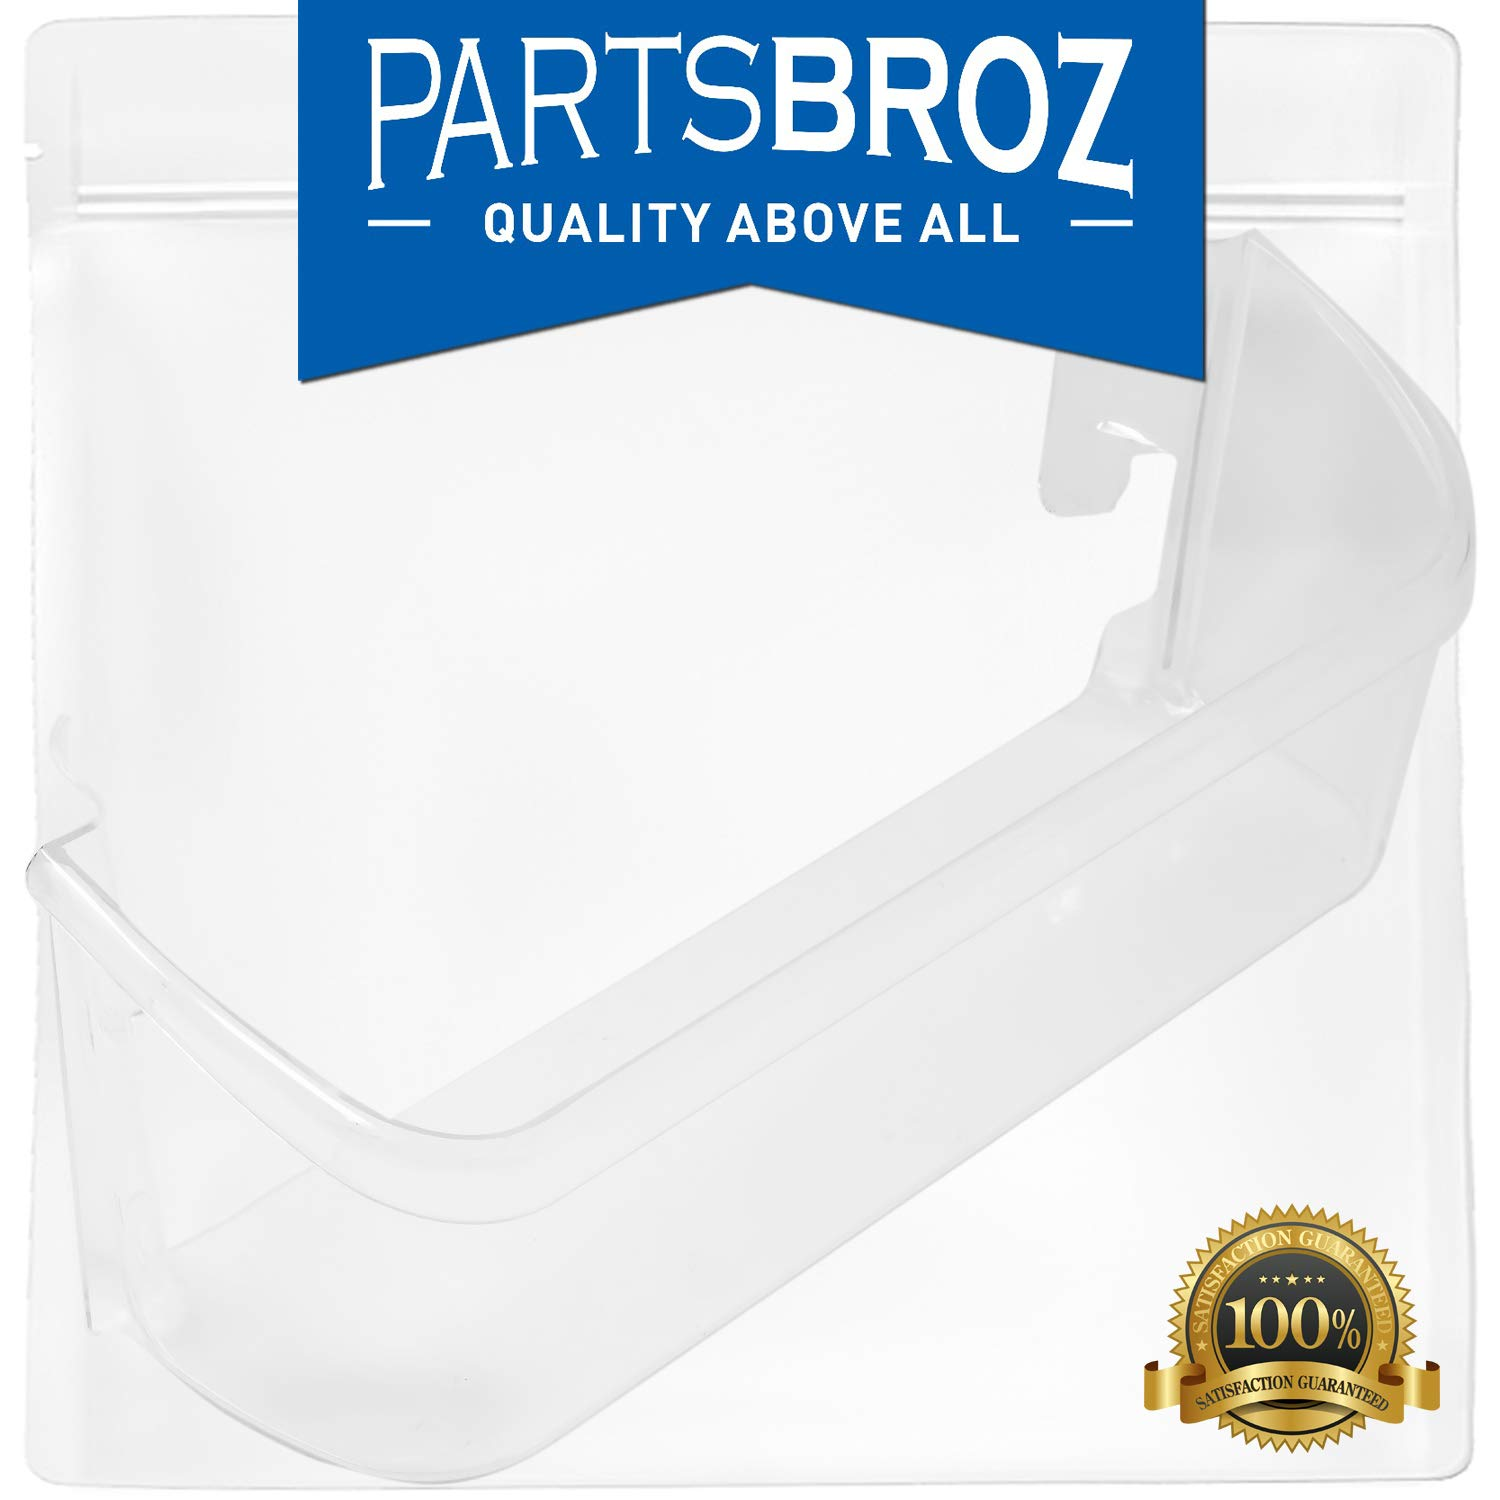 240323002 Refrigerator Door Bin Shelf for Frigidaire & Kenmore Fridges by PartsBroz - Replaces Part Numbers AP2115742, 240323005, 240323006, 240323009, 240323010, 890955, AH429725, EA429725, PS429725